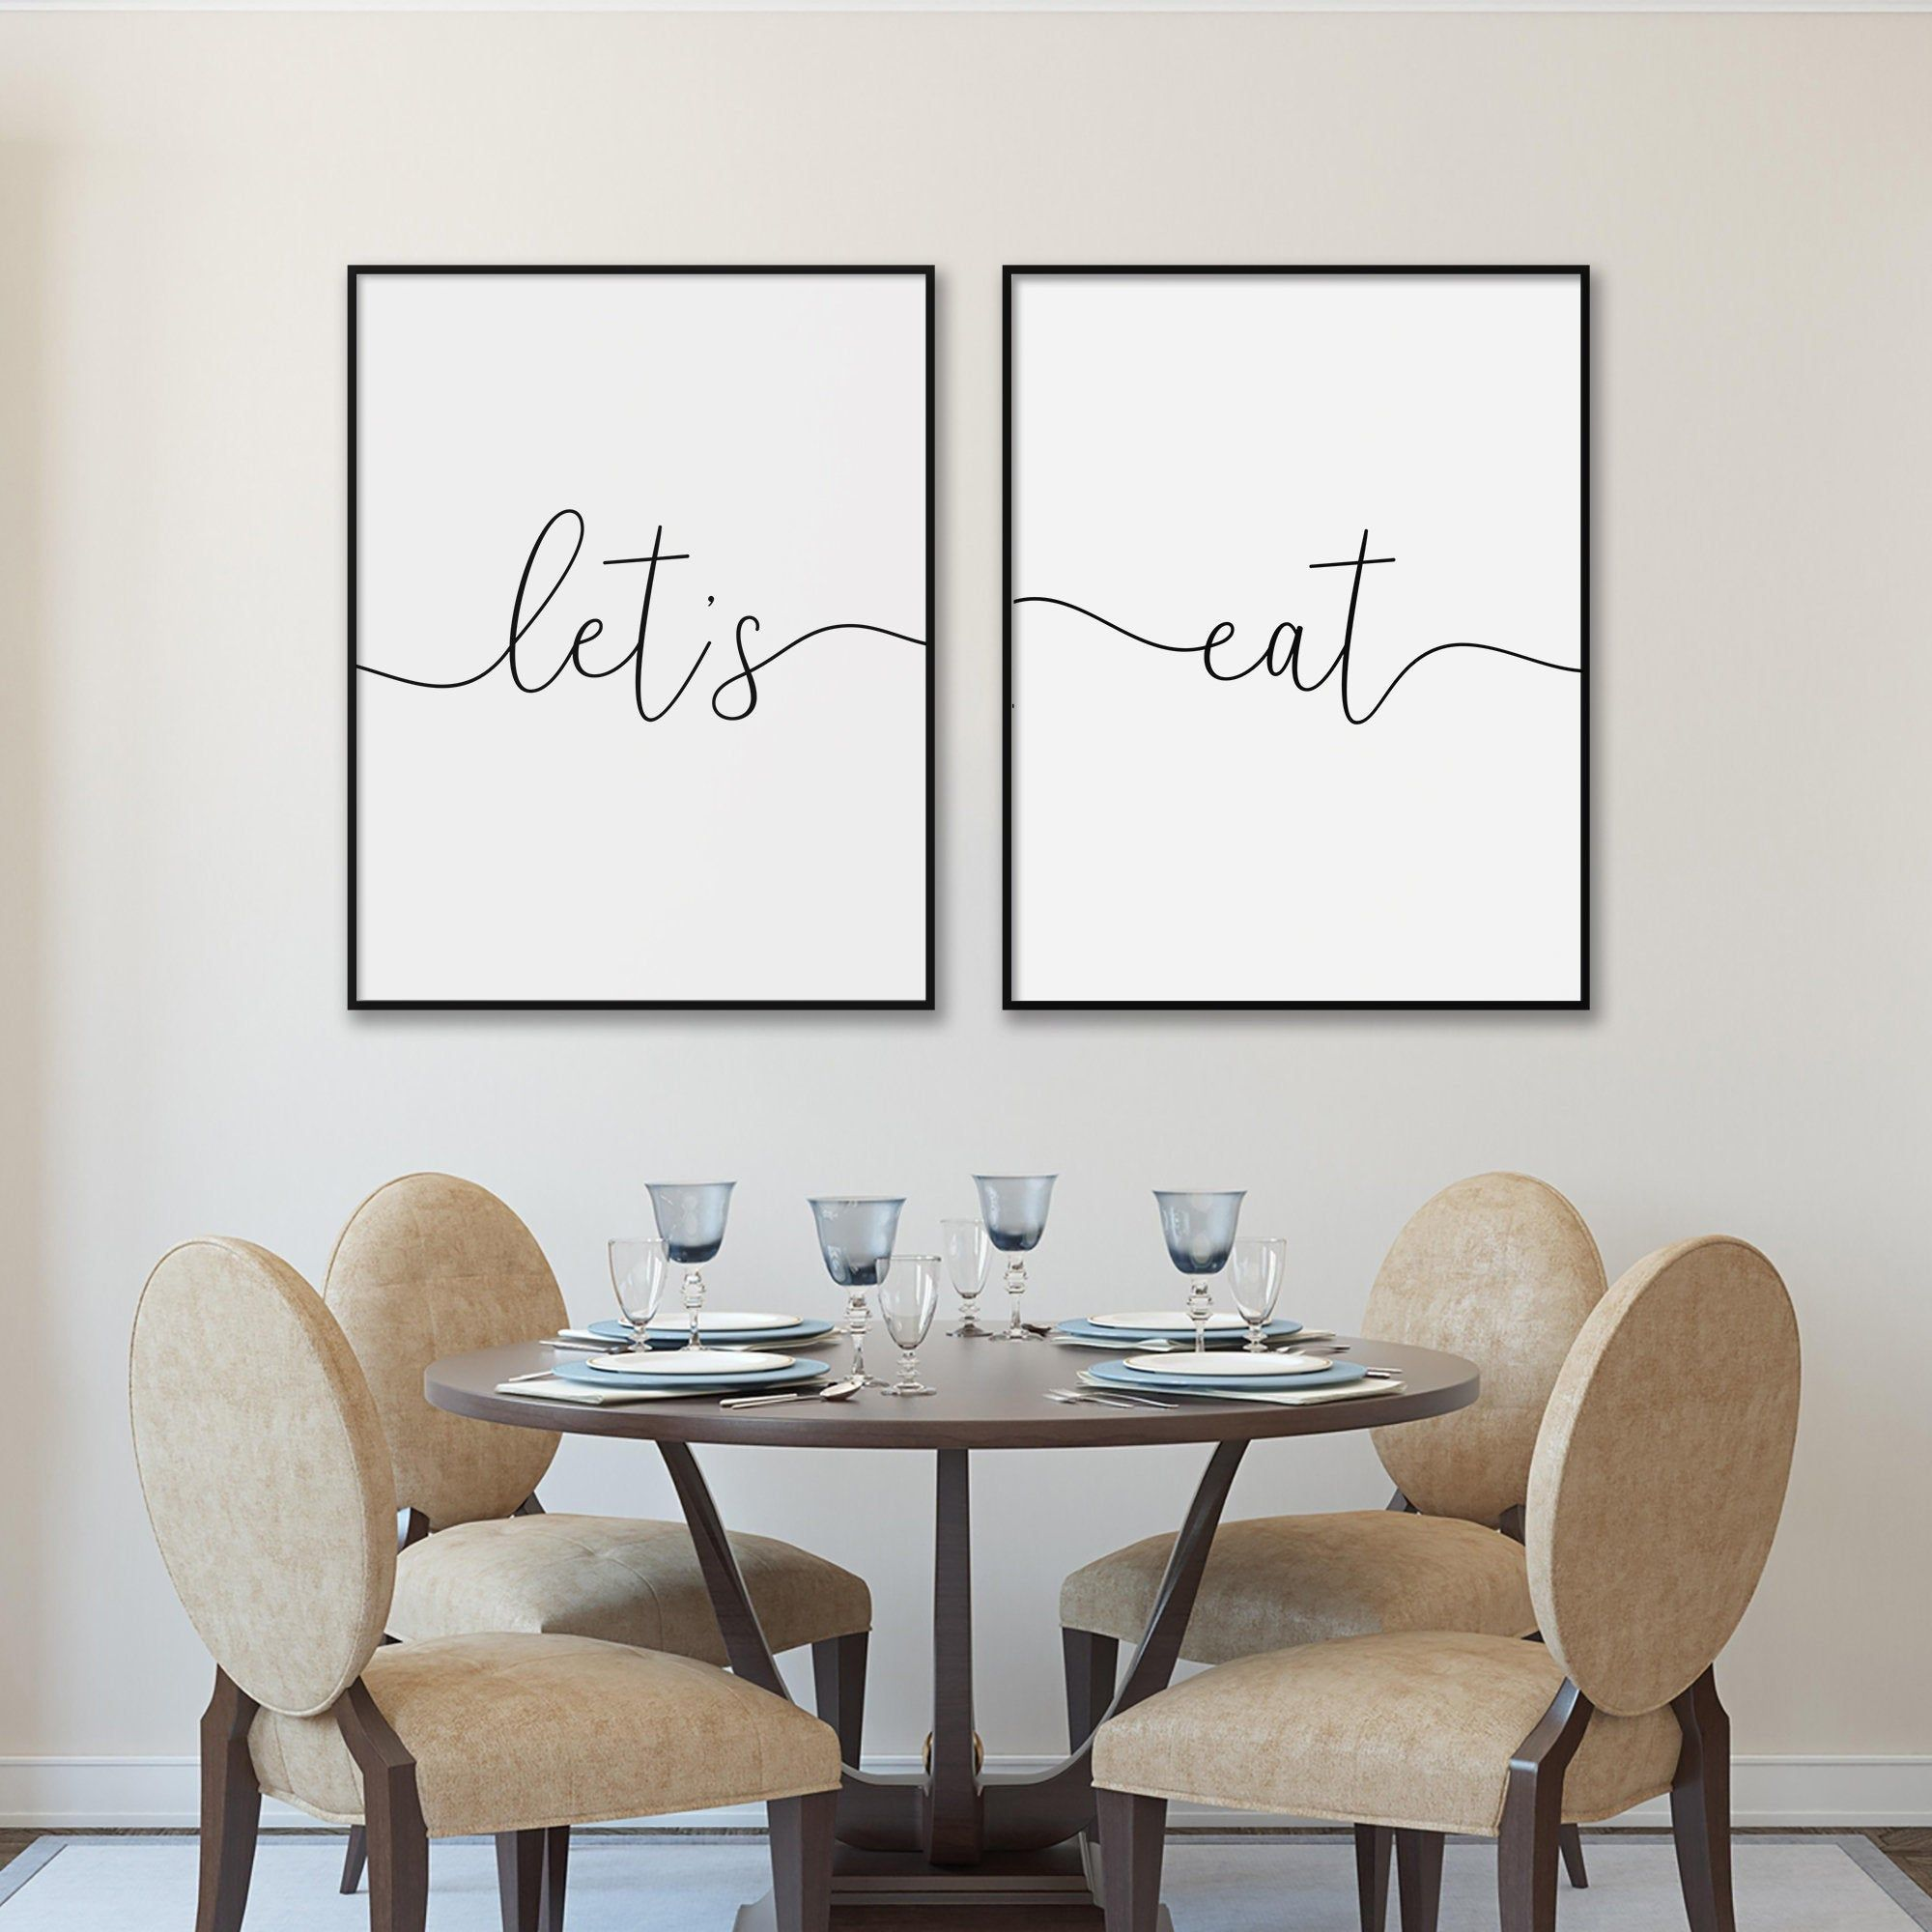 Let's eat Print Diptych, Printable Quote Posters Set of 2 Prints, Dinning Room Wall Art Decor, Kitchen Wall Art, Handwritten Style Lettering